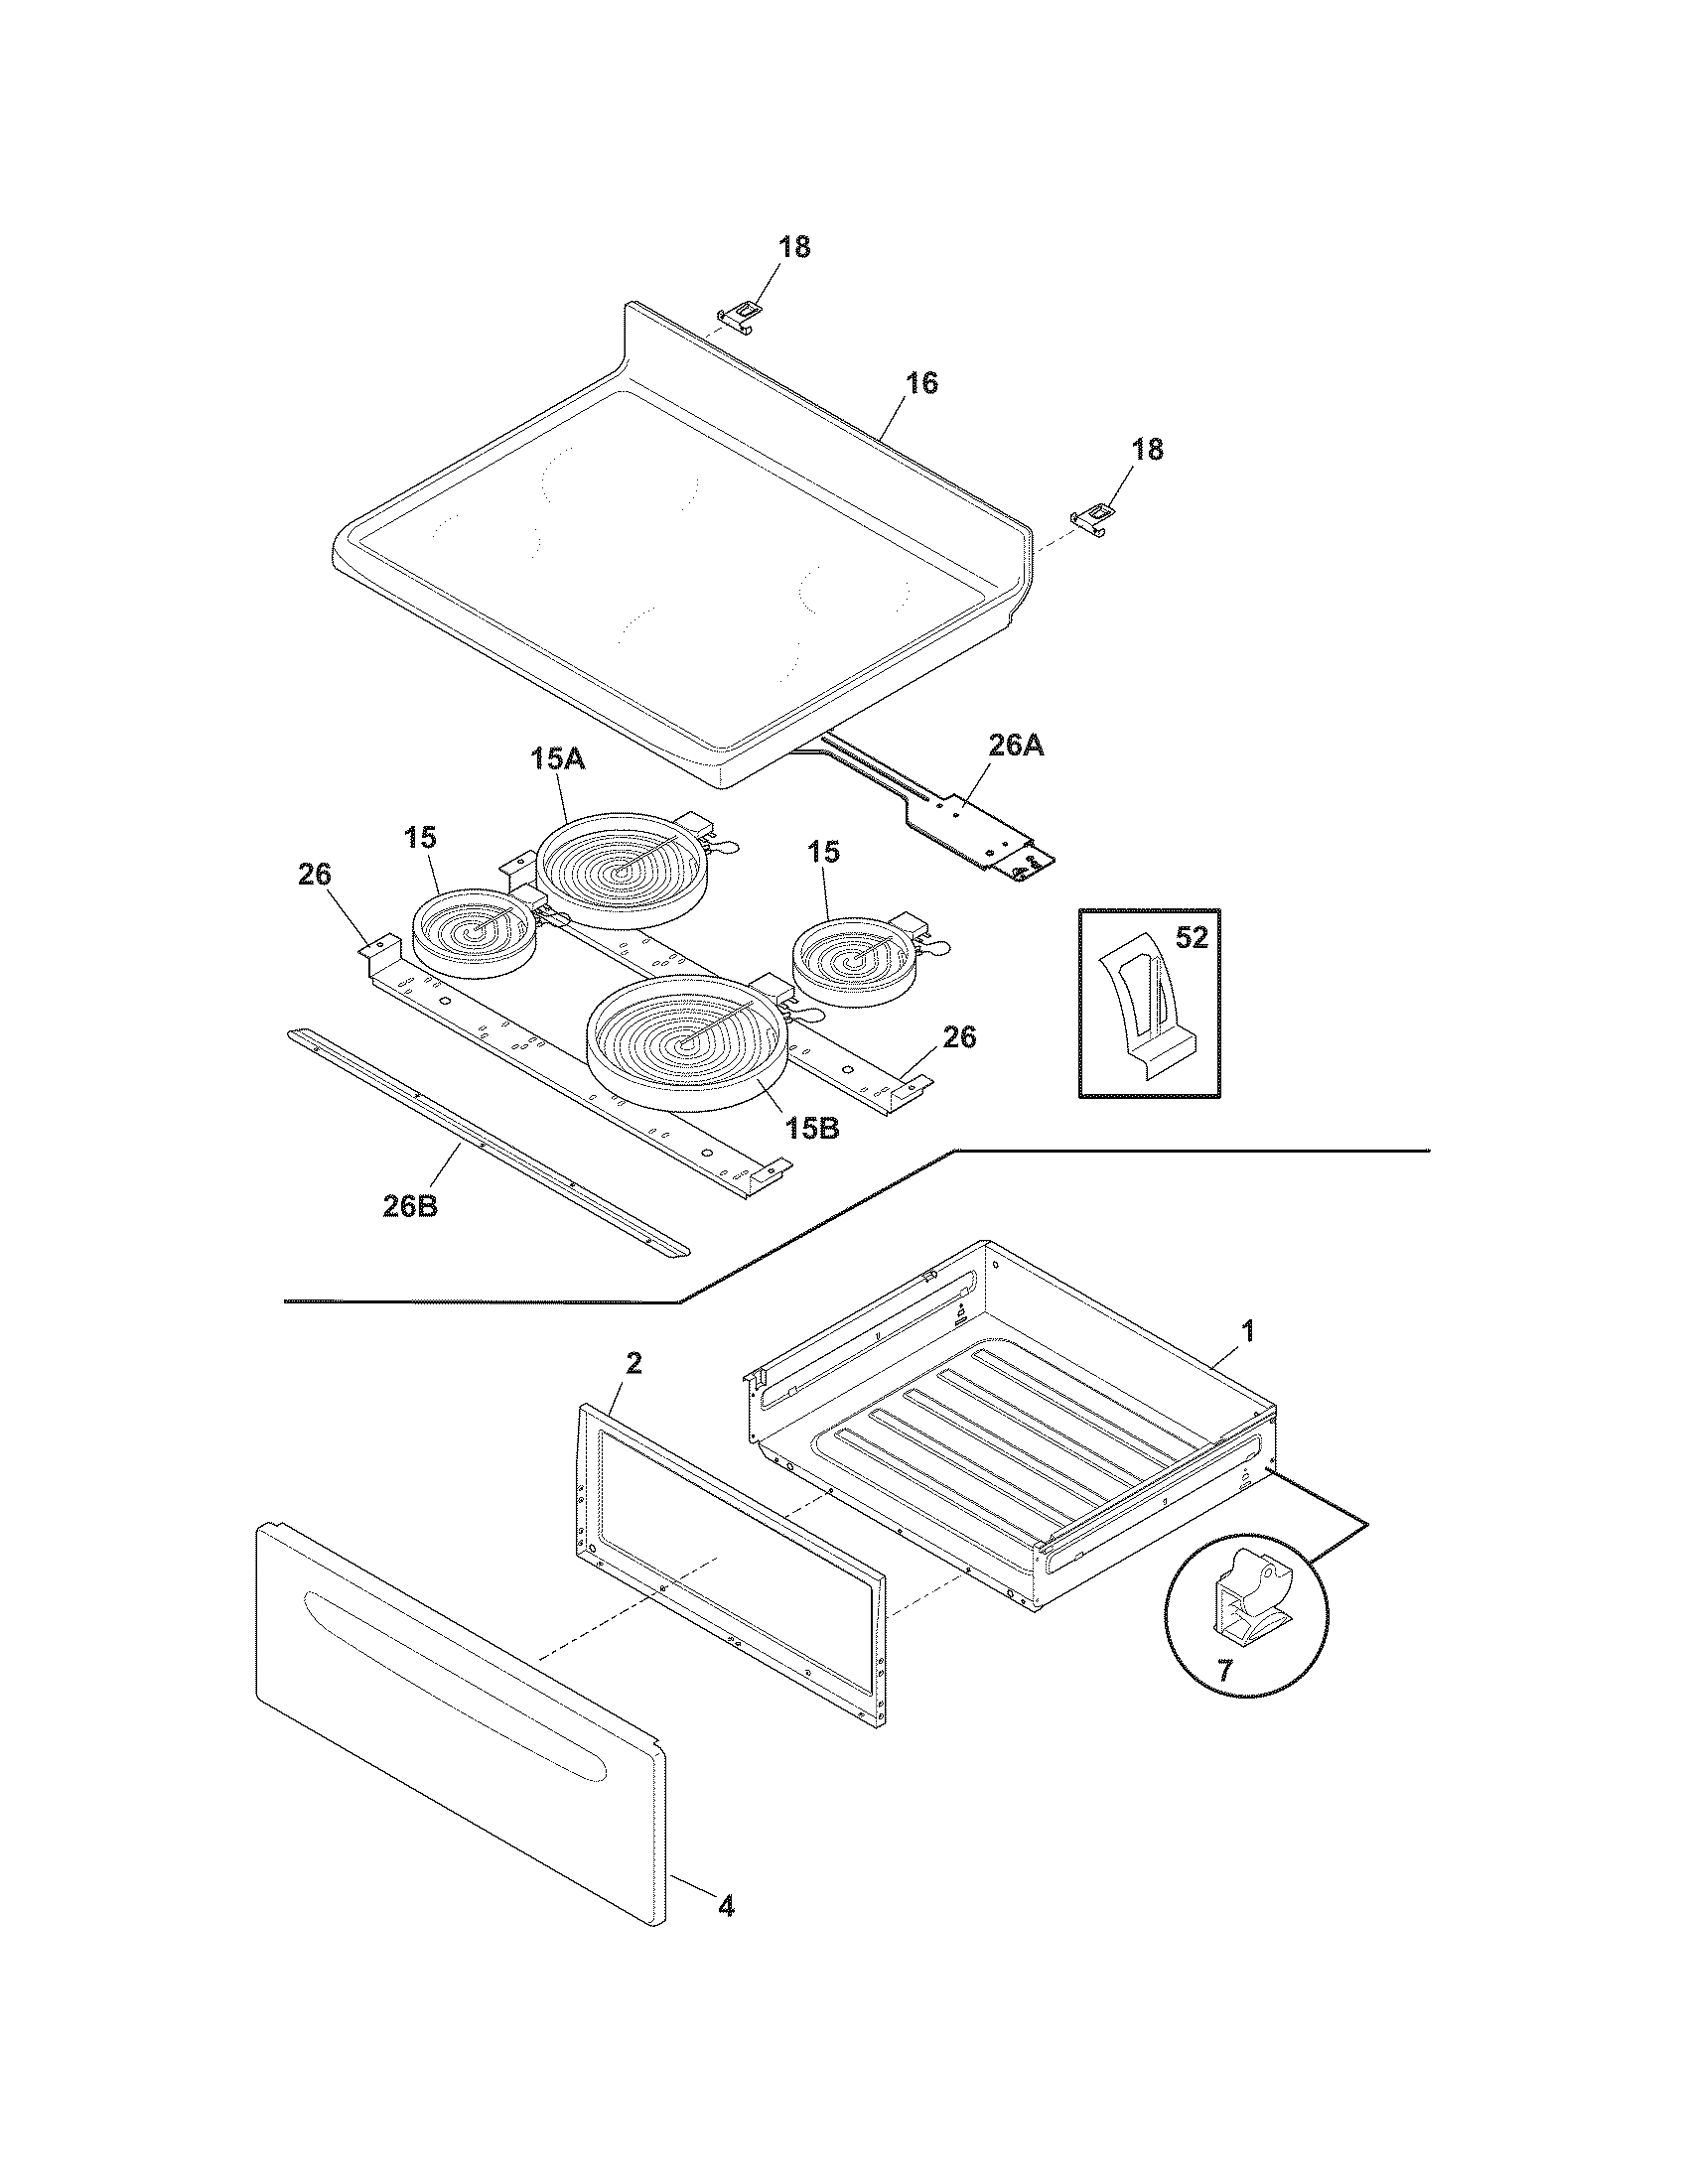 TOP/DRAWER Diagram & Parts List for Model tef361gsd Tappan